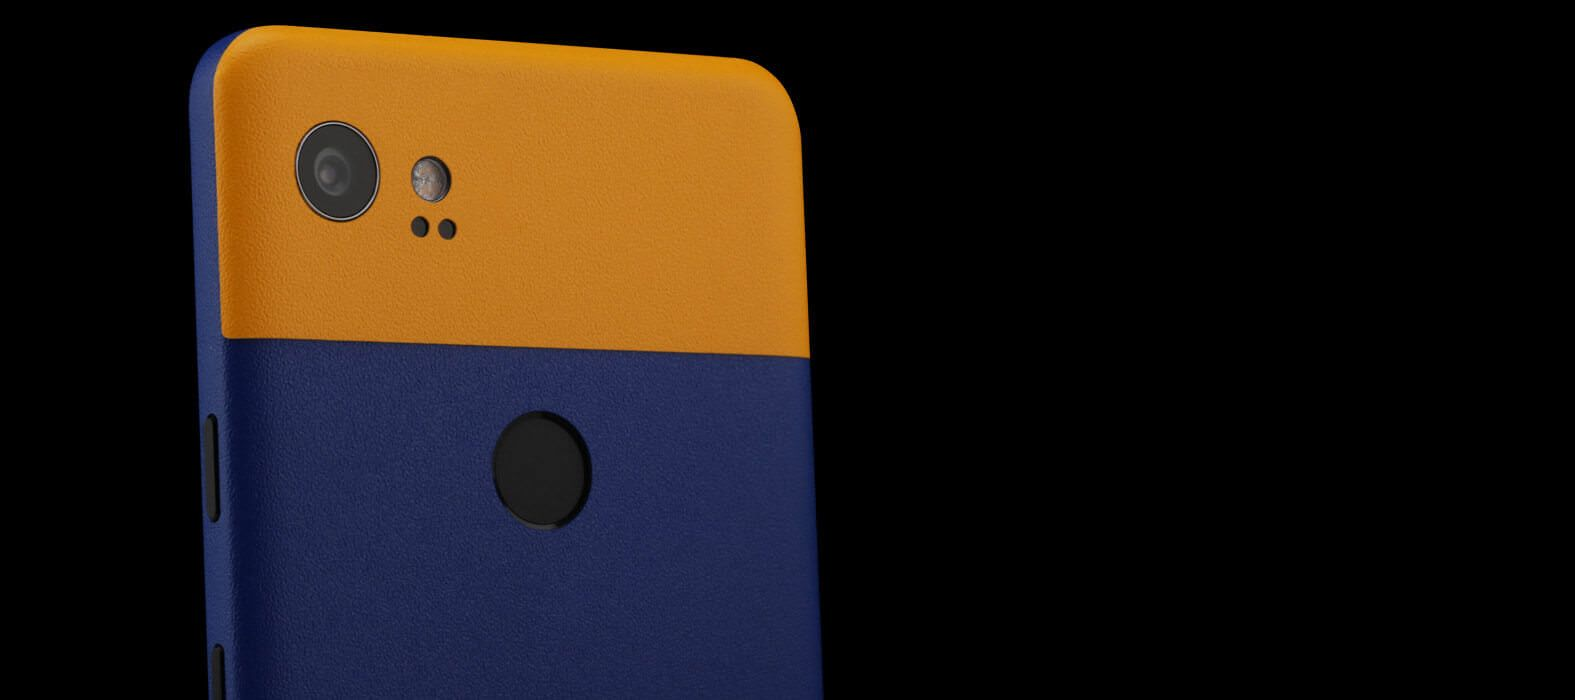 Pixel 2 XL Skins Sandstone Blue Split Wraps & Decals